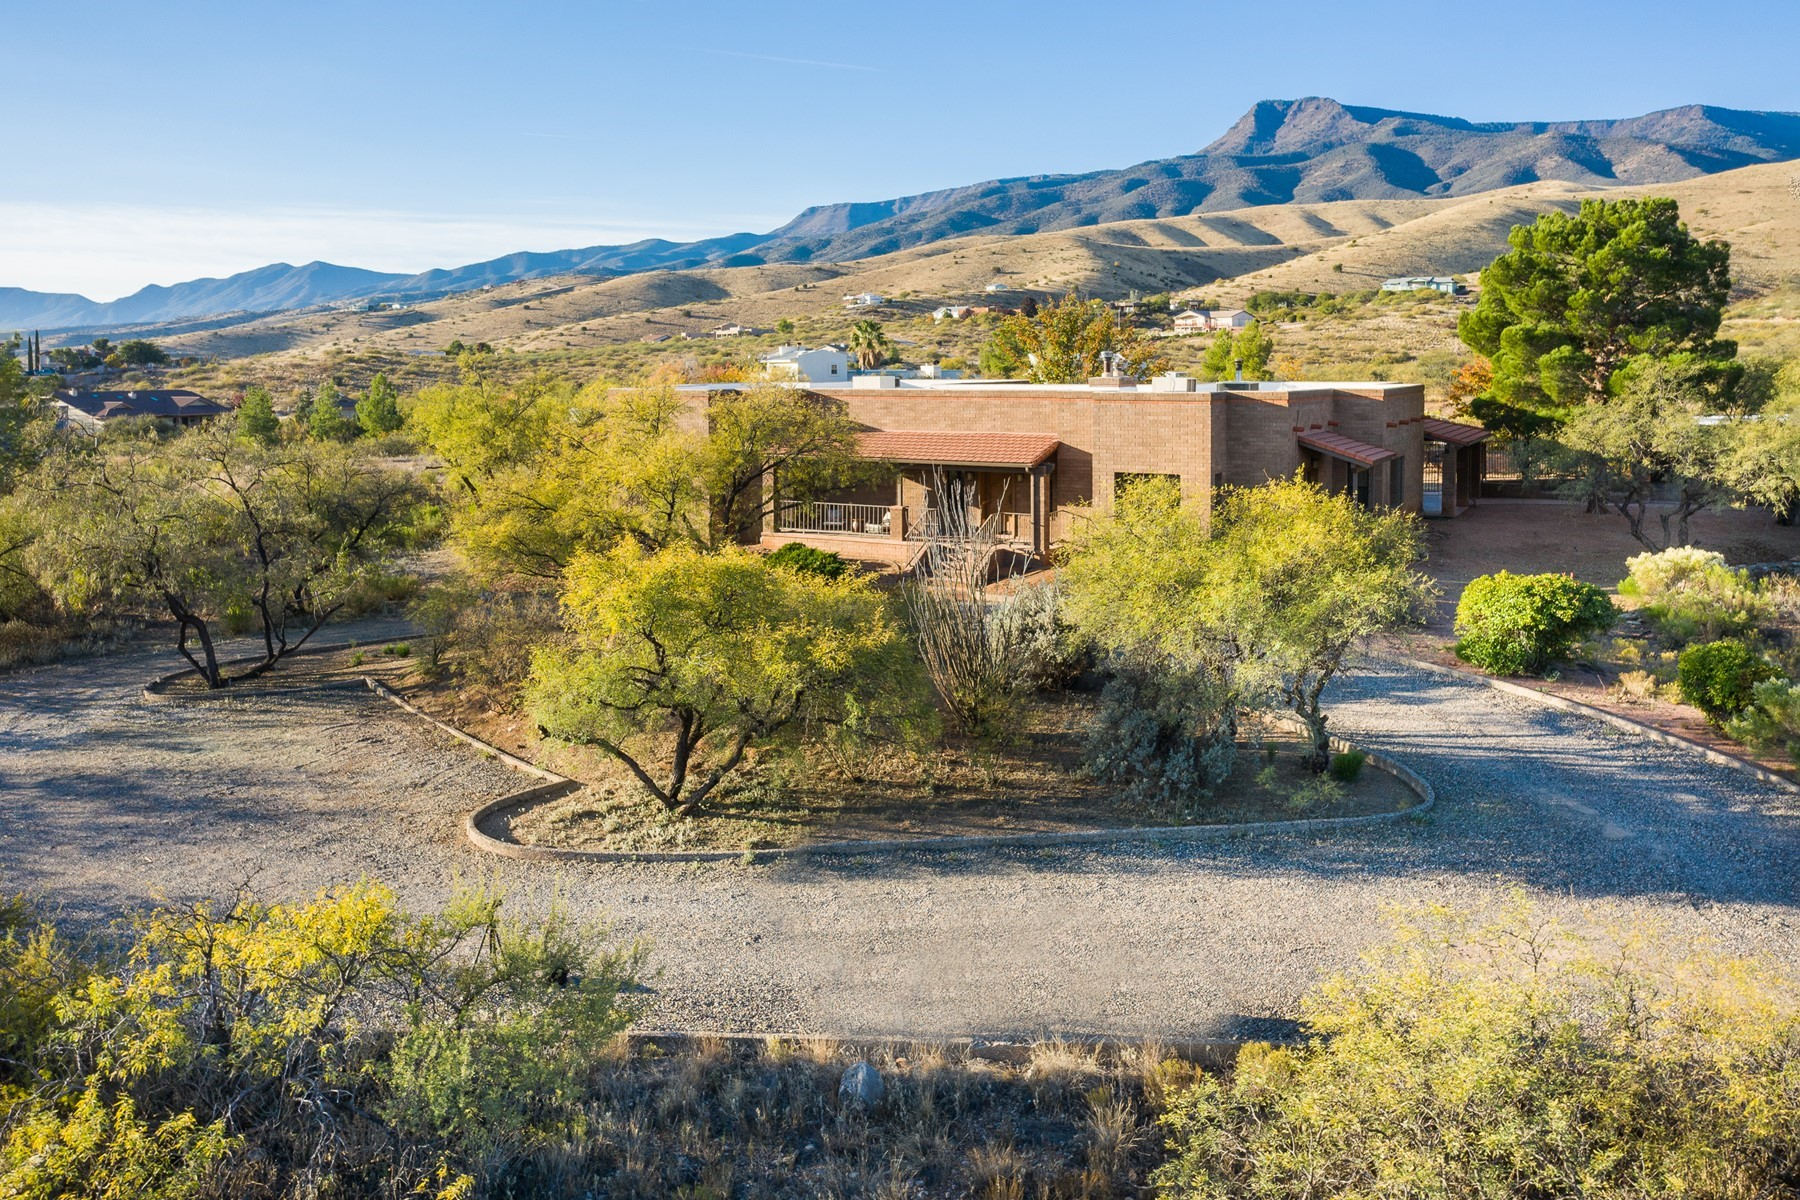 Single Family Homes for Active at Clarkdale 1080 Old Jerome Highway Clarkdale, Arizona 86324 United States